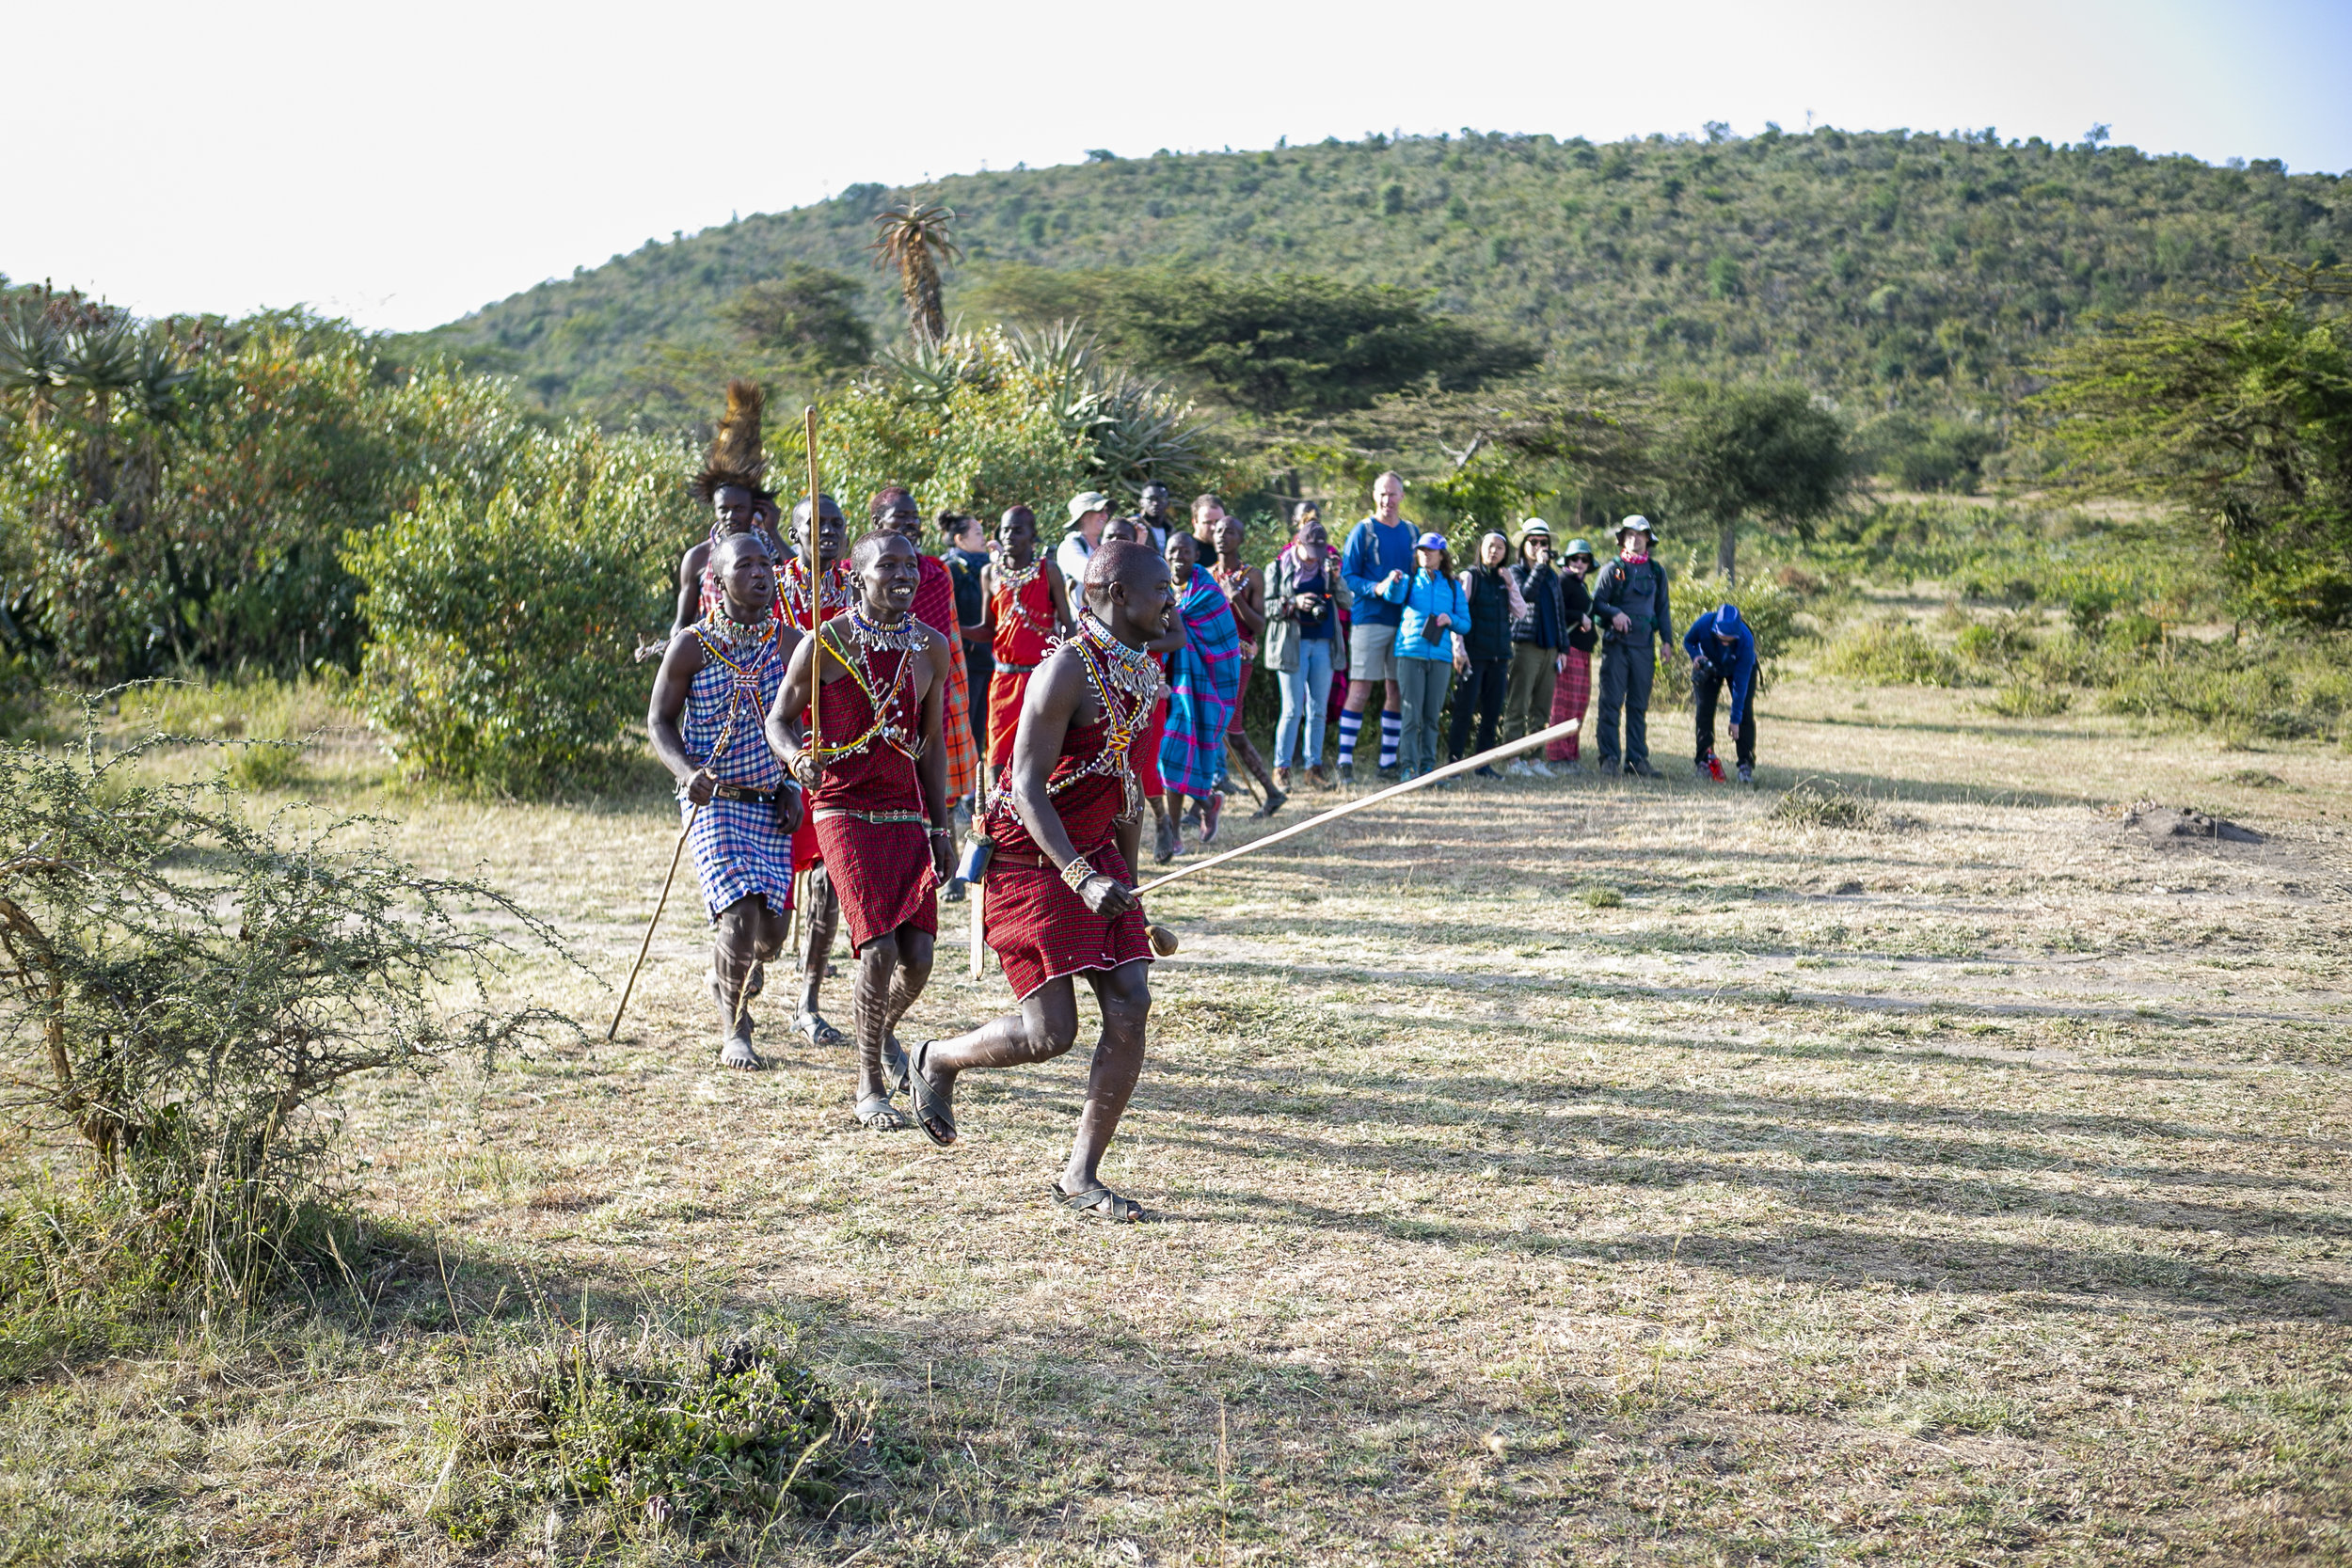 African Adventure - 23 July '18 - From the Loita Hills Maasai Village to the Masai Mara National Reserve - 004.JPG